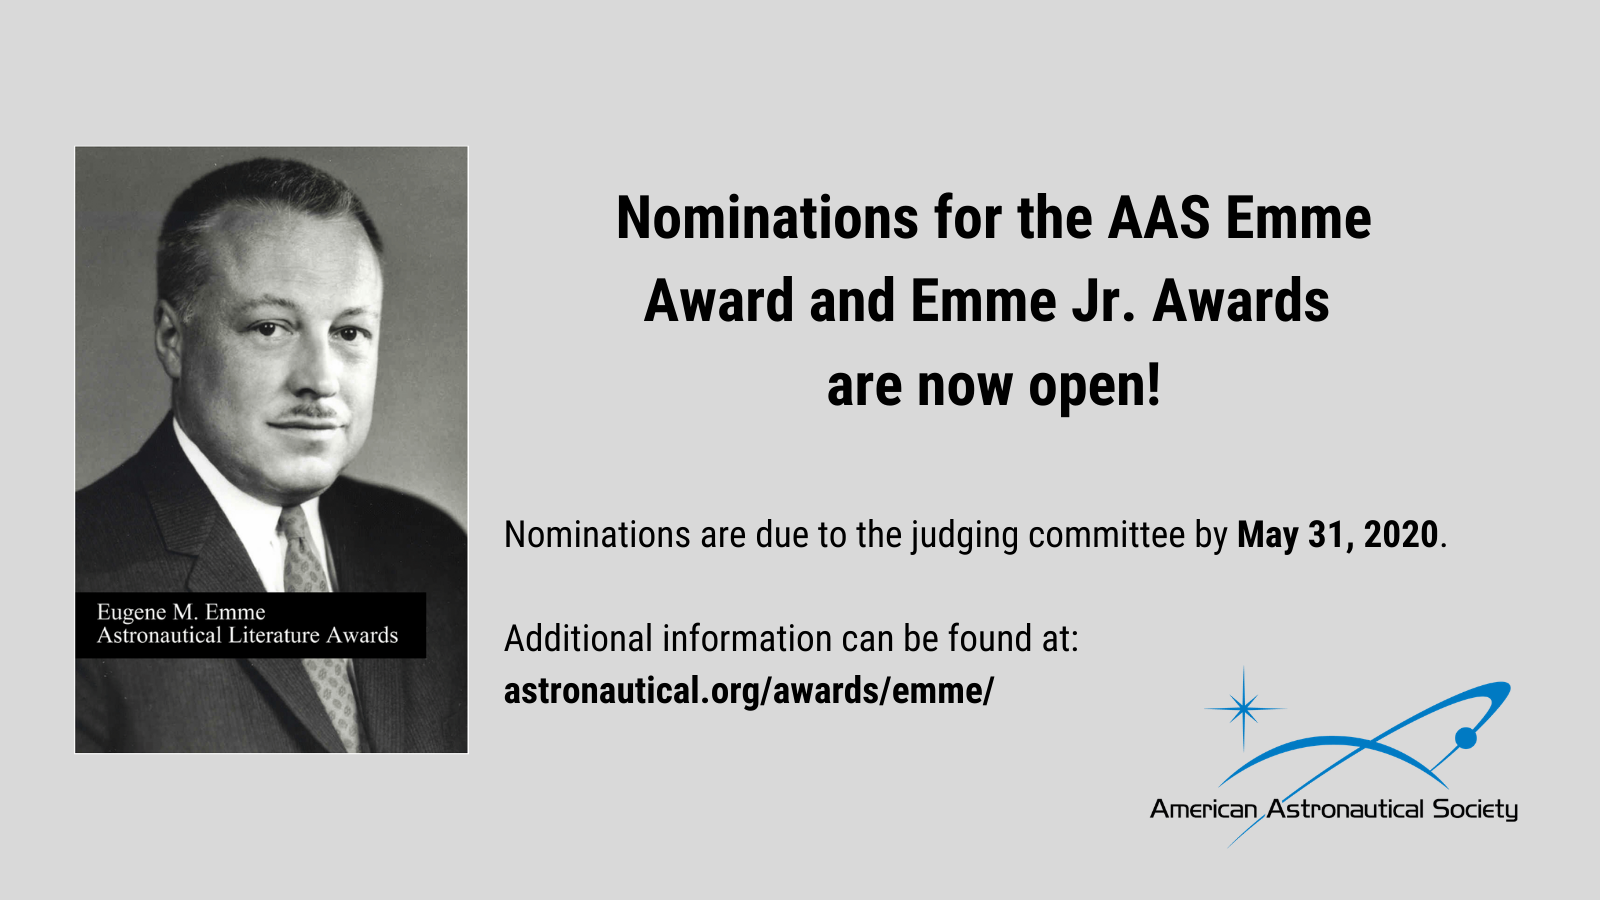 Nominations for the Emme Award and Emme Juniors Awards are now open